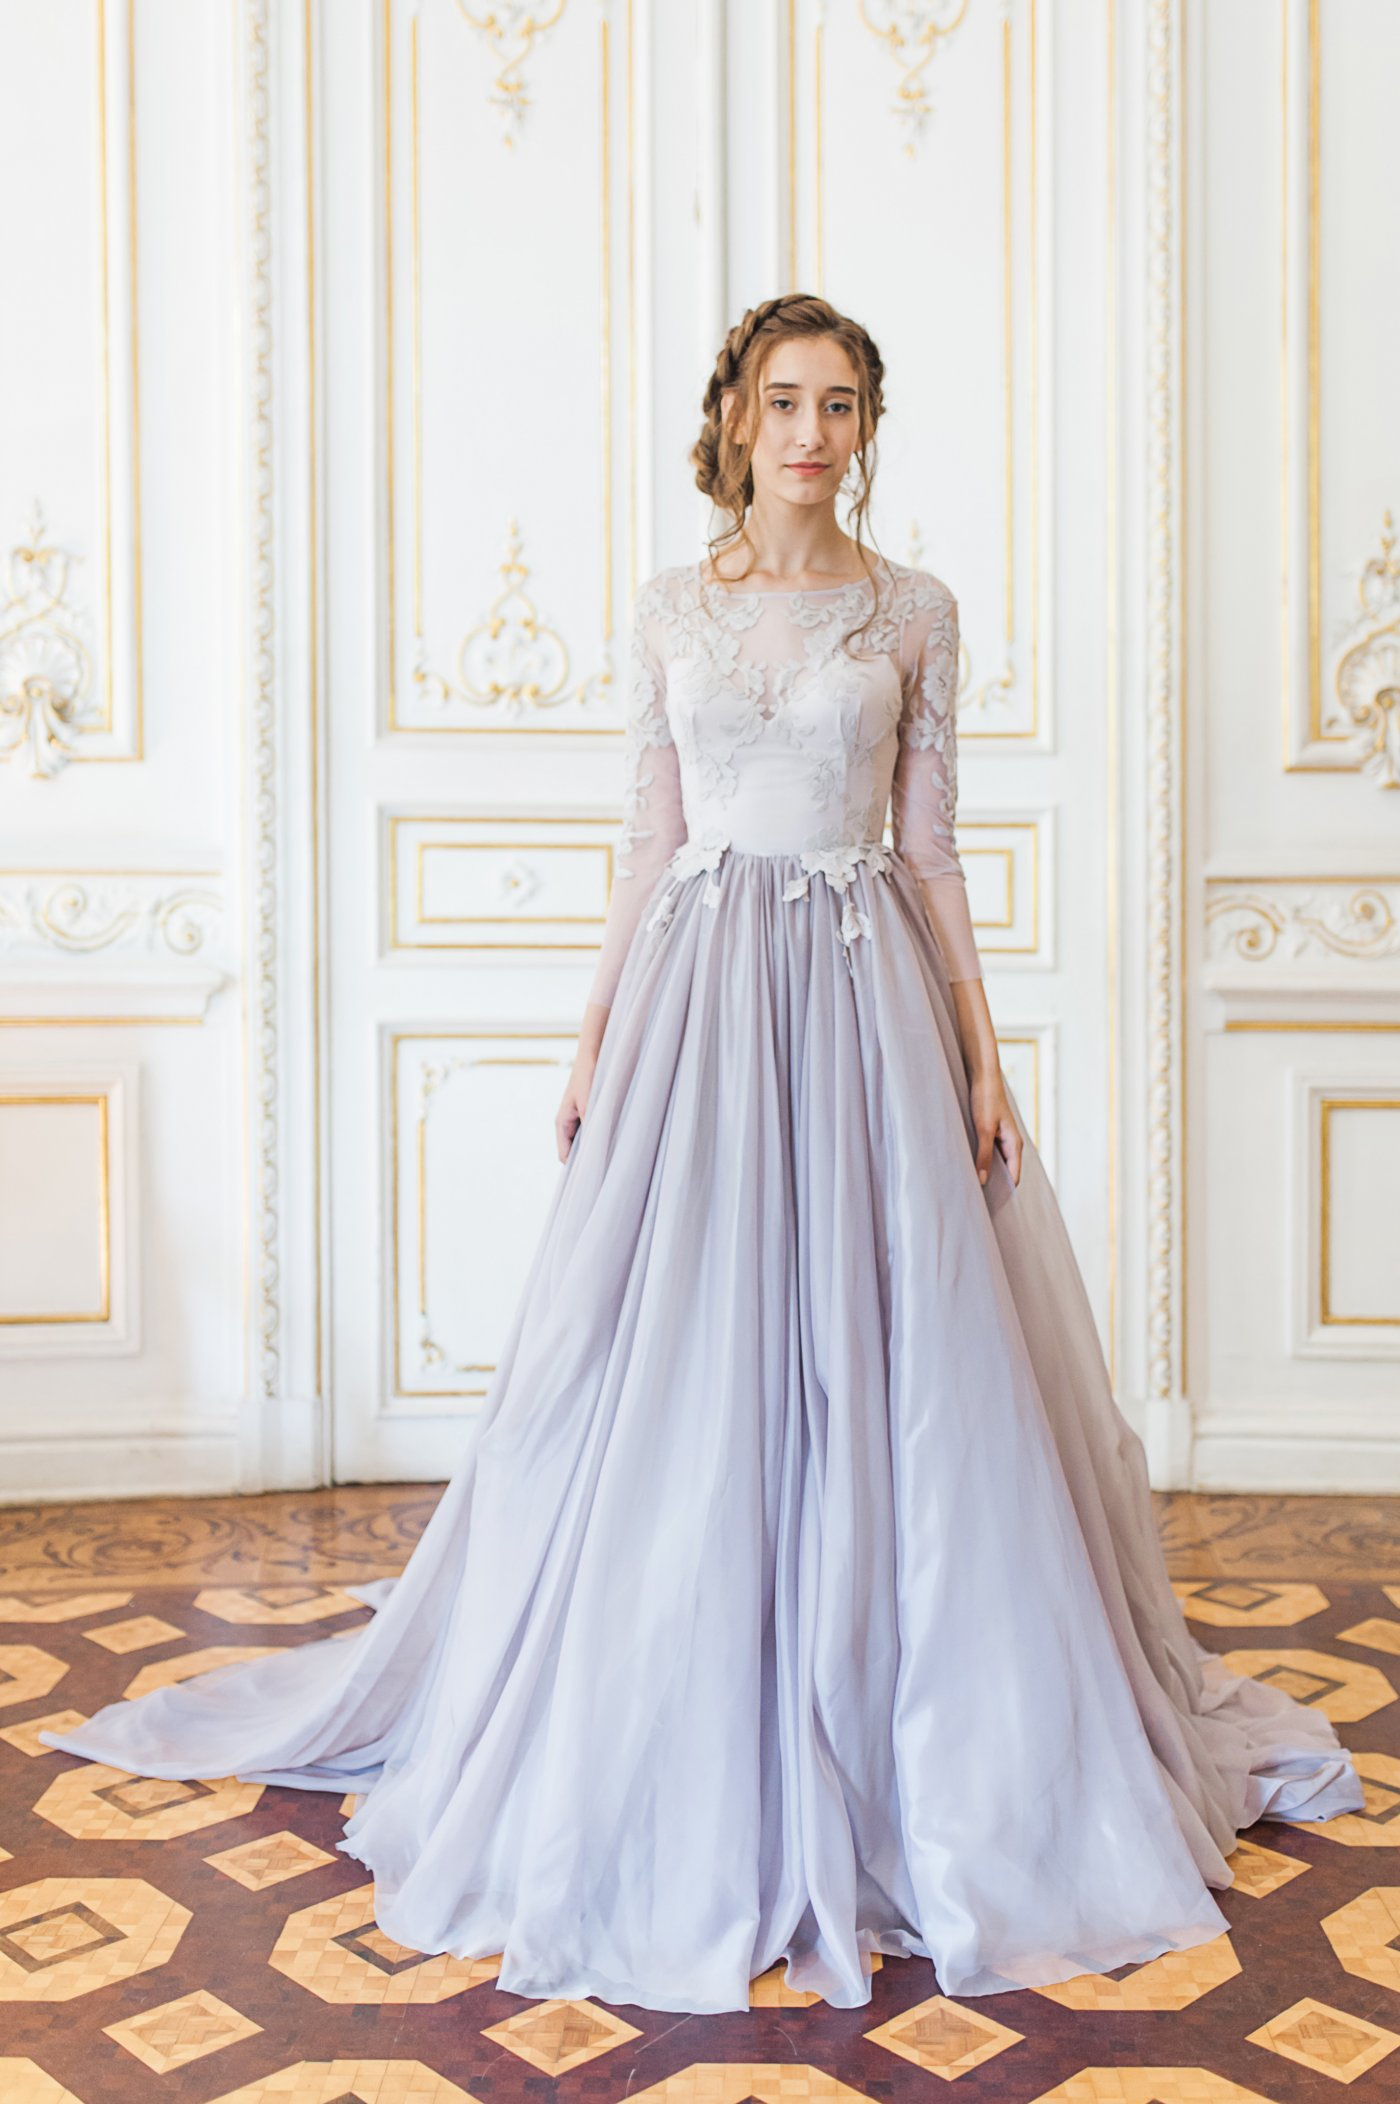 Lilac Wedding Gown With Long Sheer Sleeve And Fl Liques Floating Down The Bodice Cathy Telle